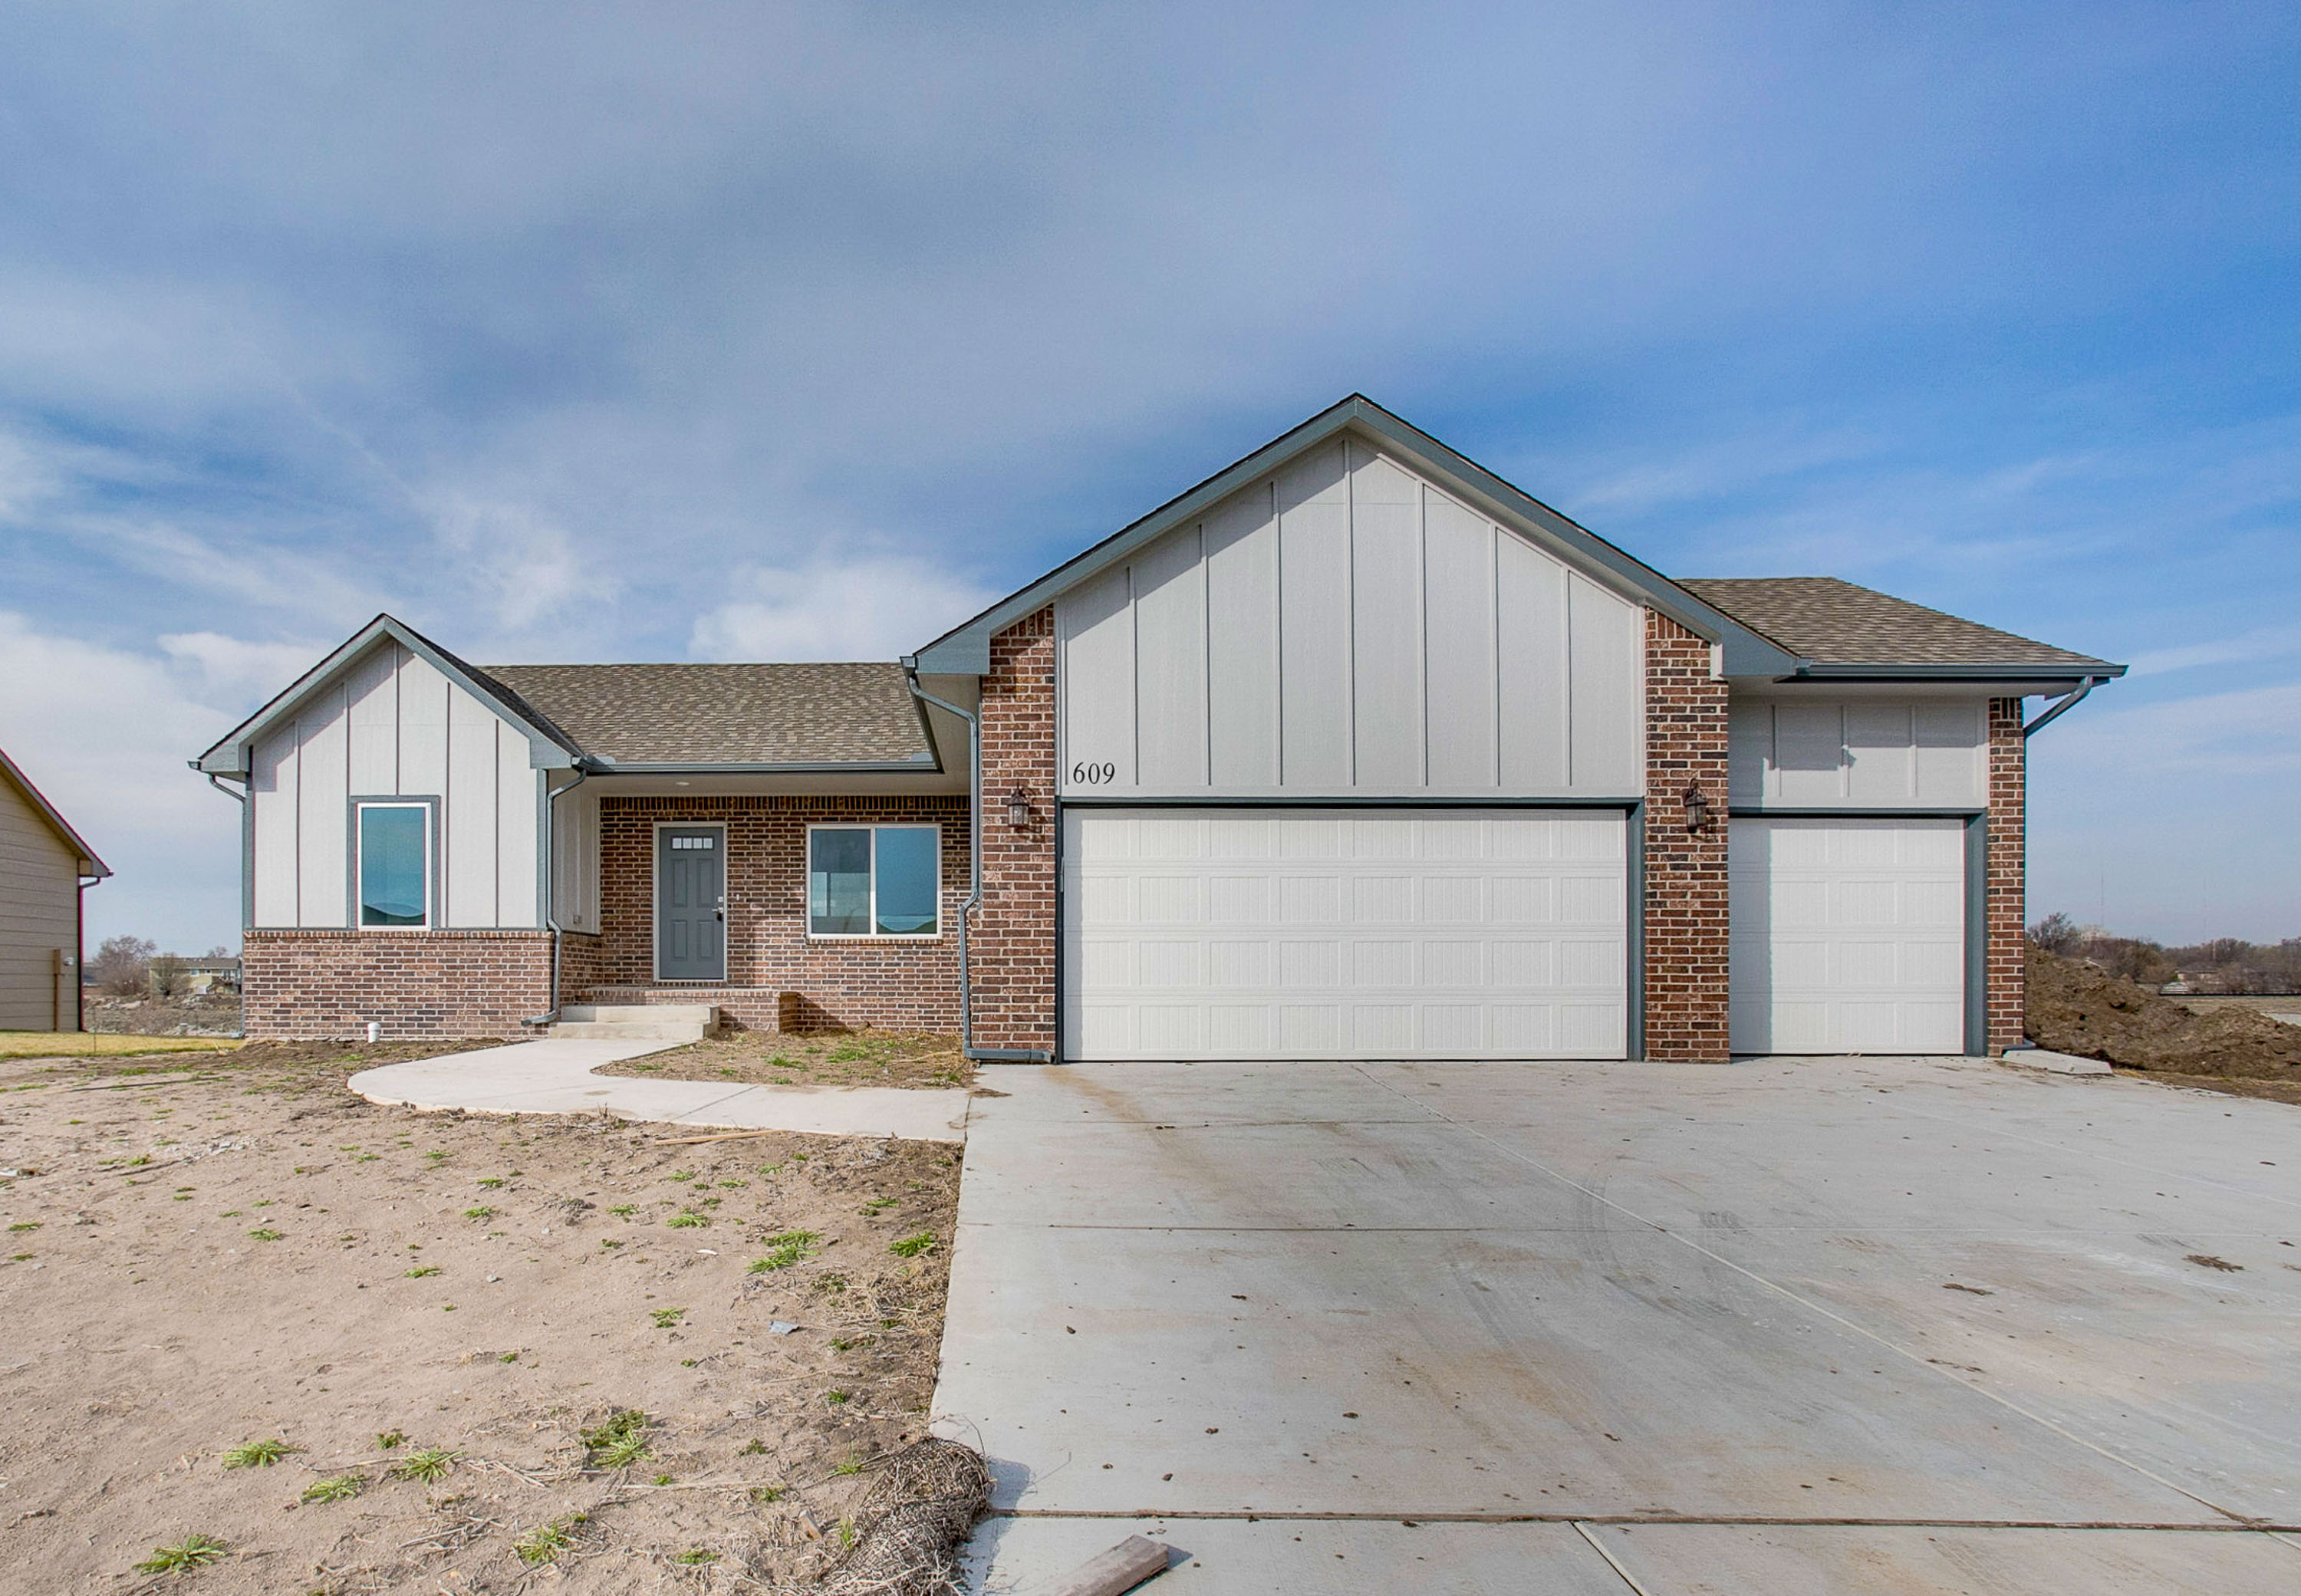 609 Horseshoe bend (1)